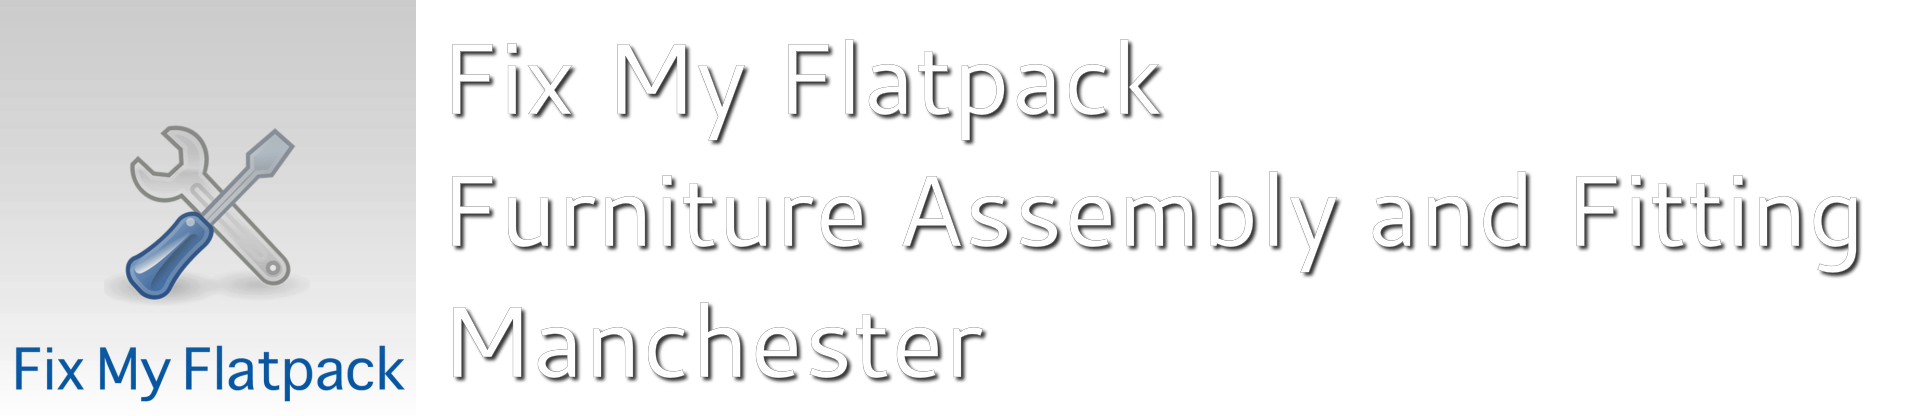 Fix My Flatpack - Furniture Assembly and Fitting Manchester